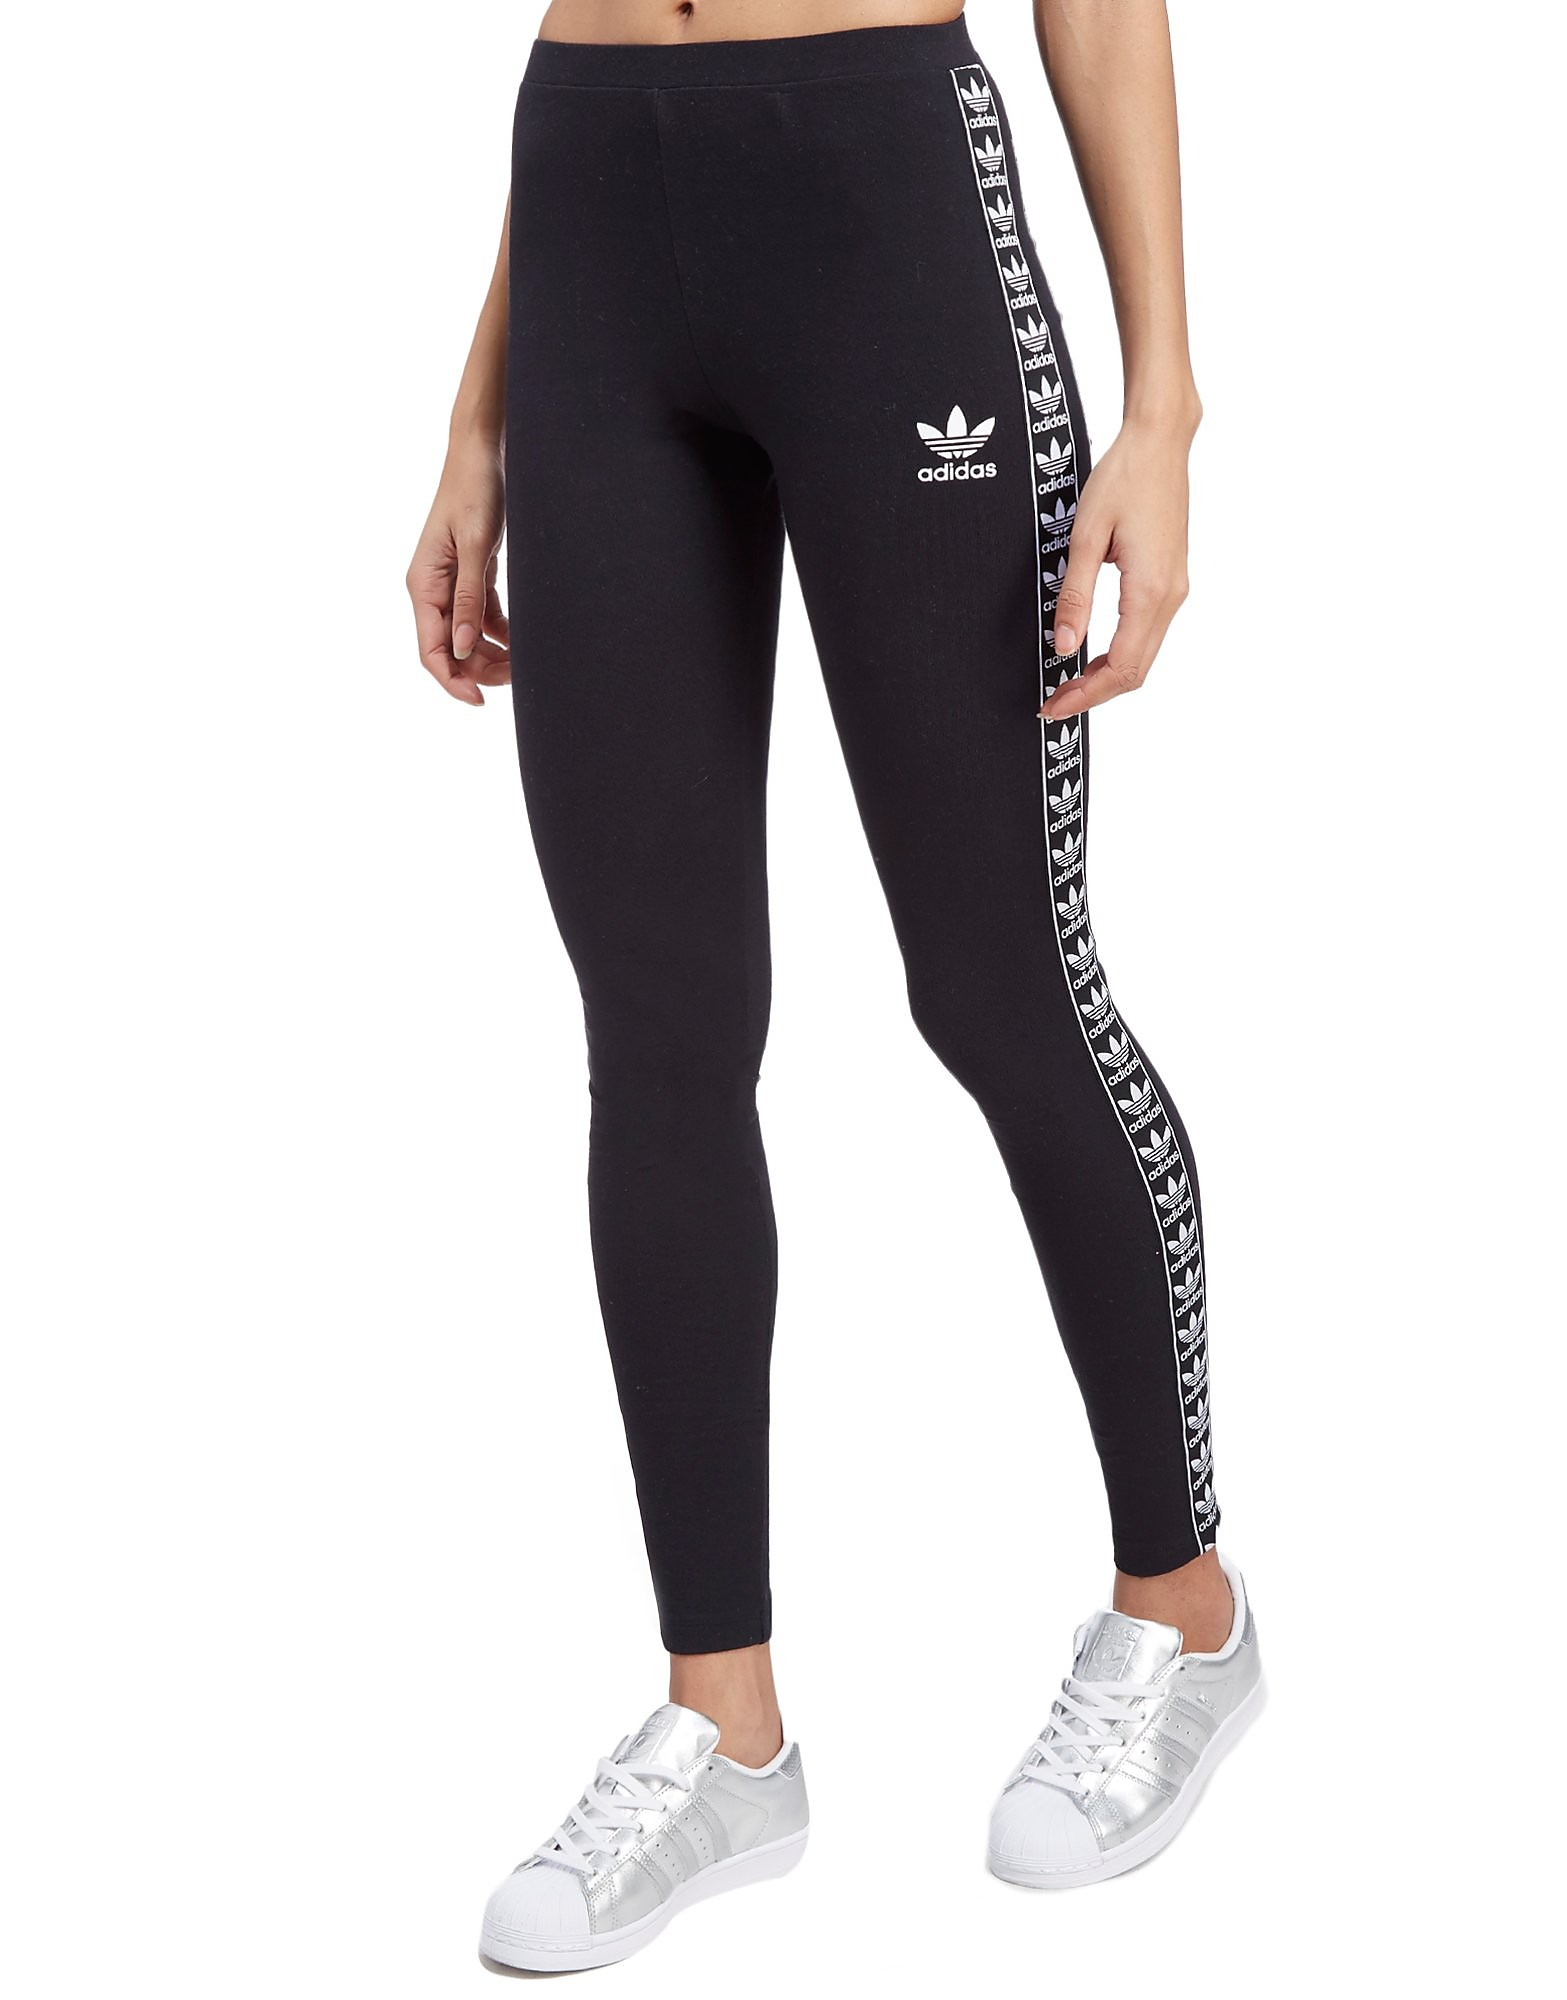 adidas Originals Tape Leggings